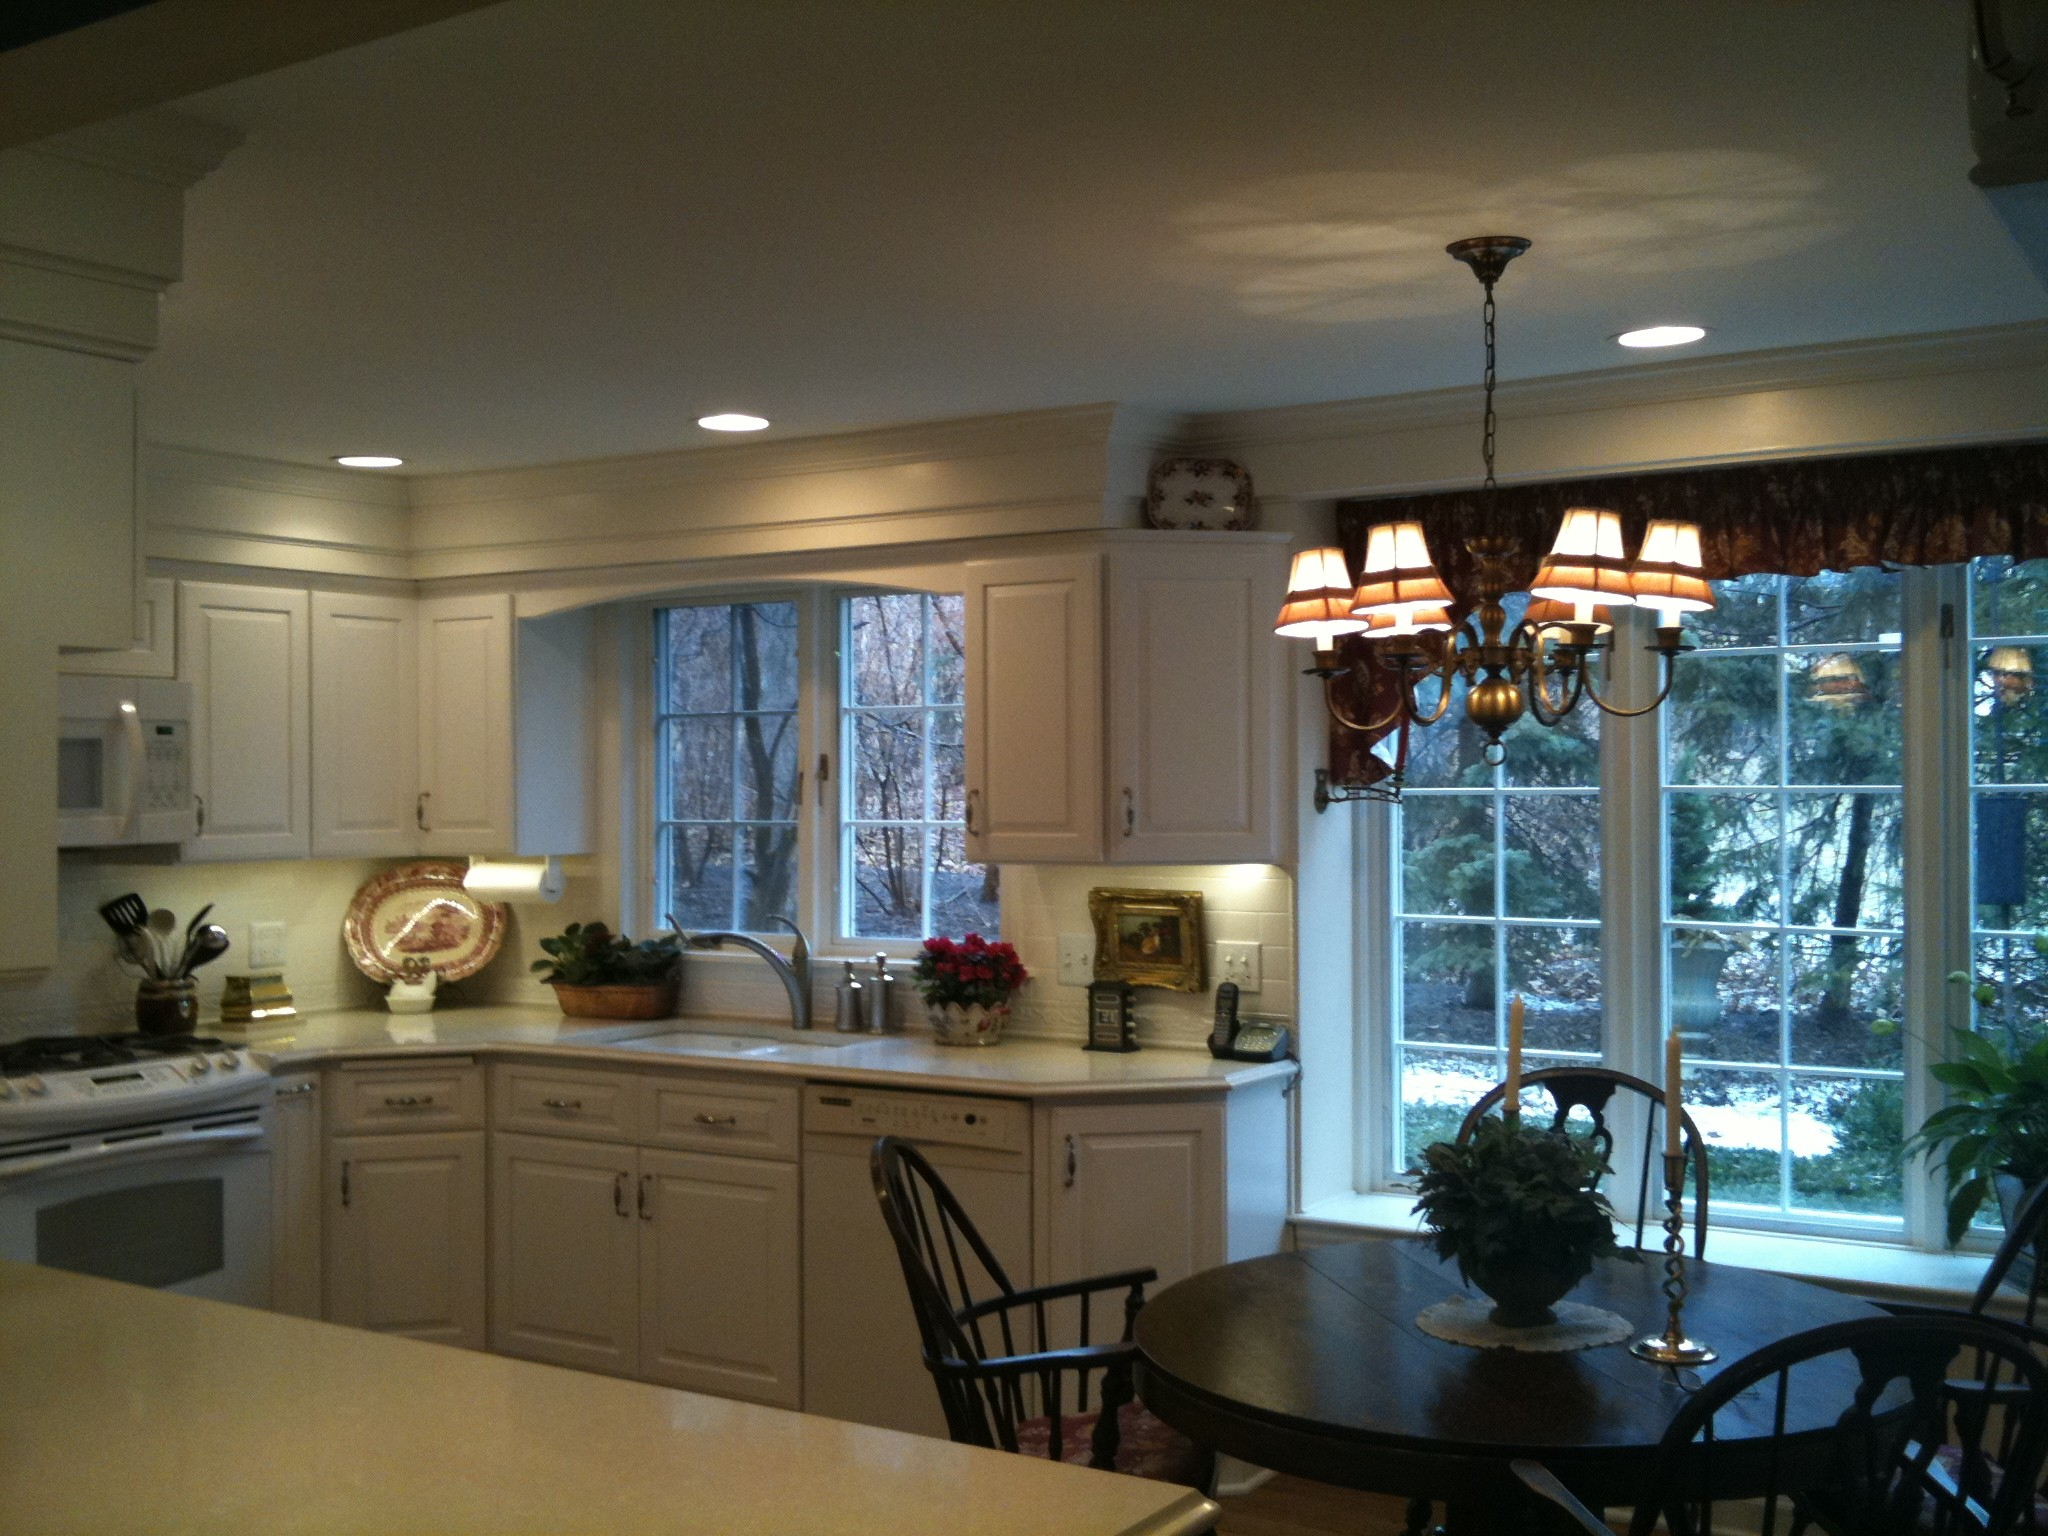 Customwood Kitchens Of Westmont Illinois Il Pictures Photographs Designs Cabinets